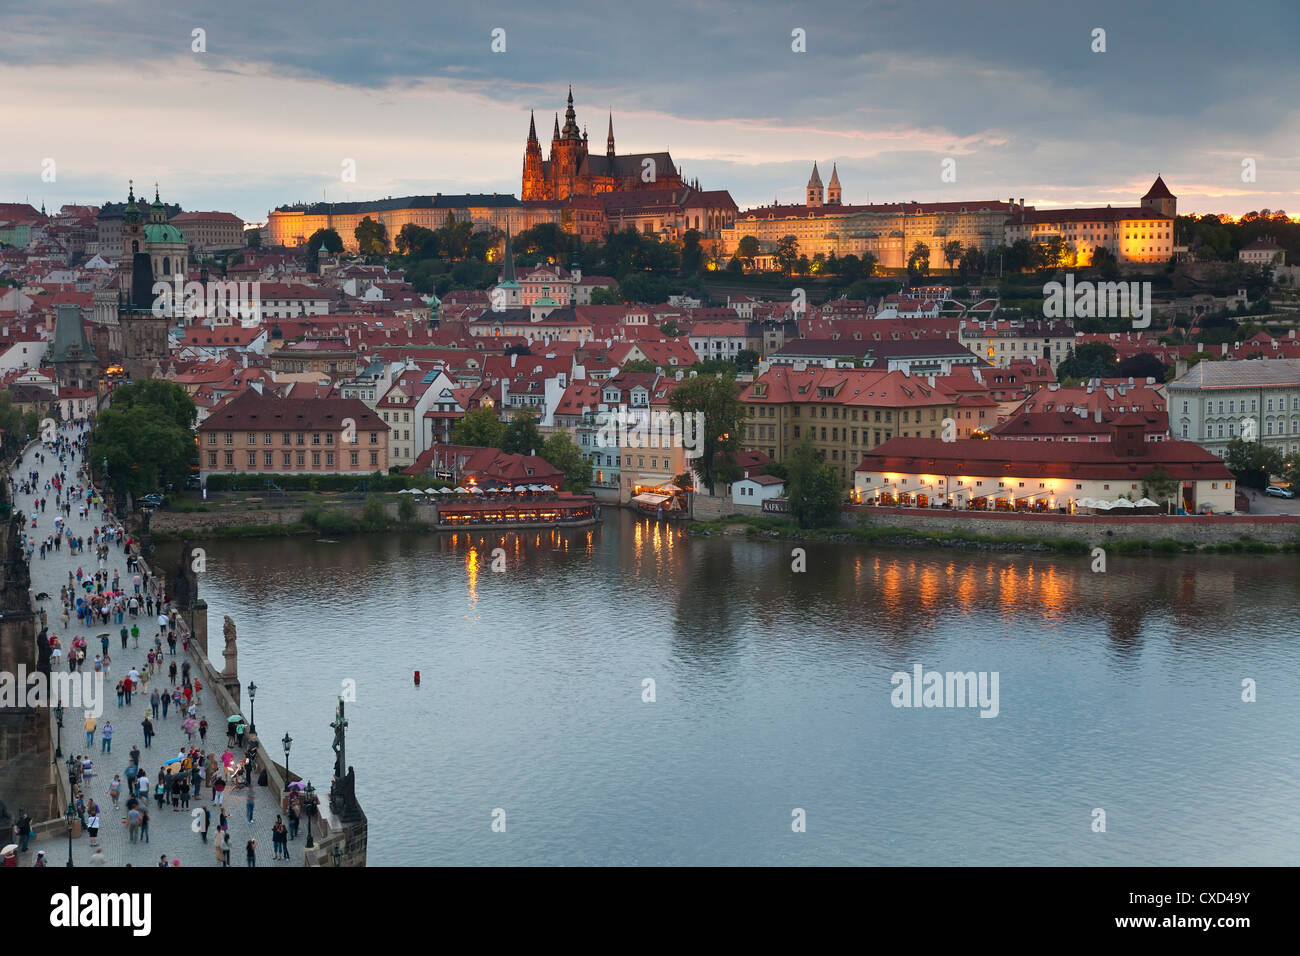 St. Vitus Cathedral, Charles Bridge, River Vltava and the Castle District illuminated at night, Prague, Czech Republic - Stock Image